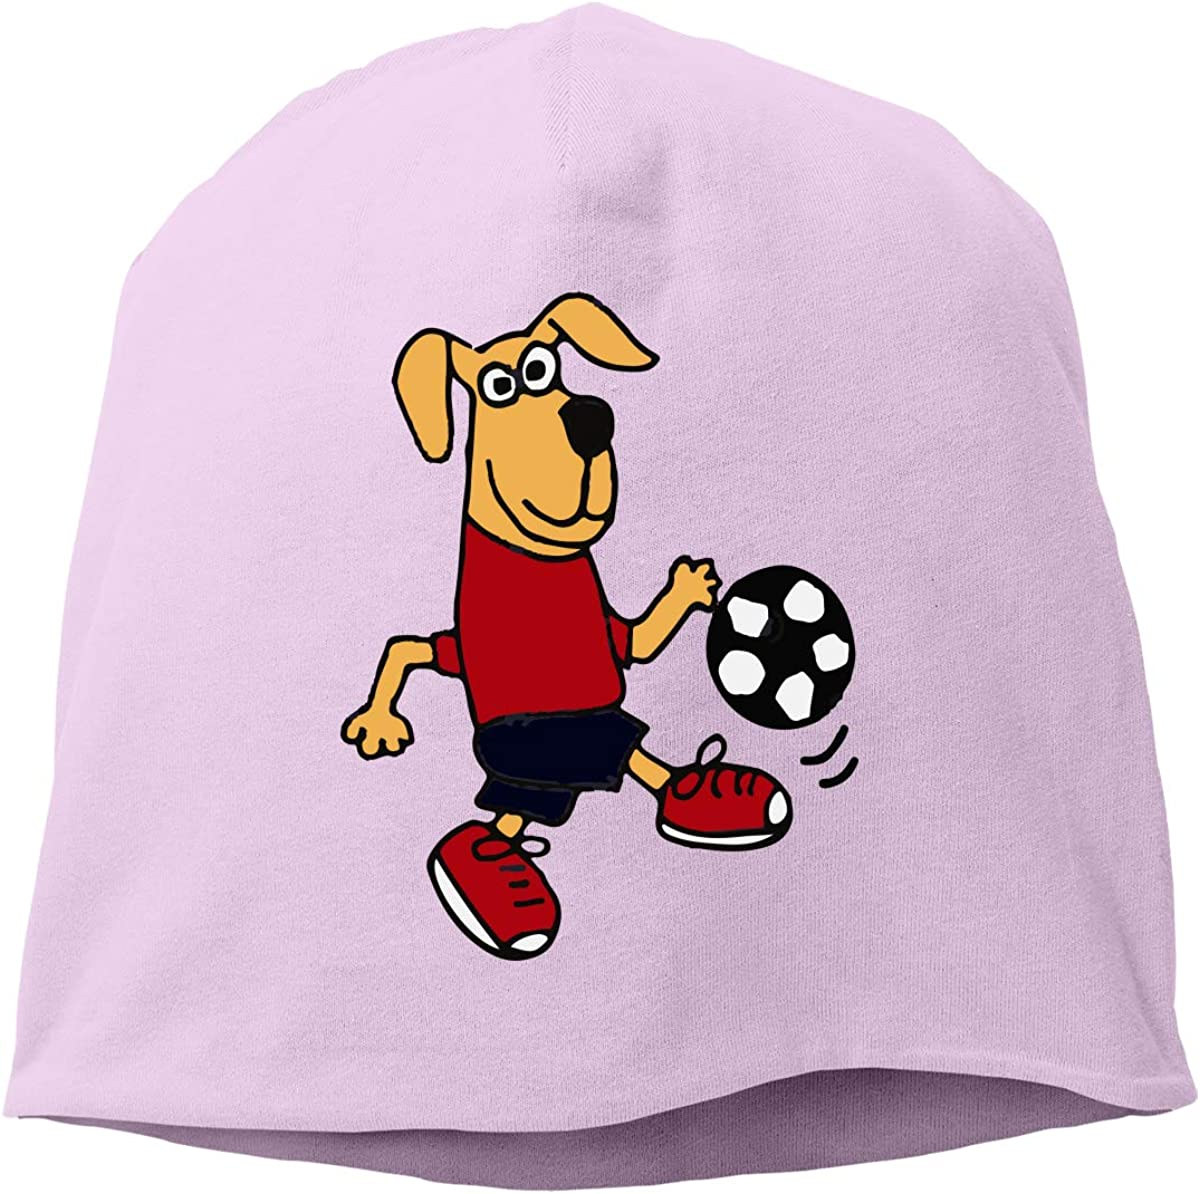 TLPM9LKMBM Cute Dog Playing Soccer Beanie Skull Cap for Women and Men Winter Warm Knit Hat